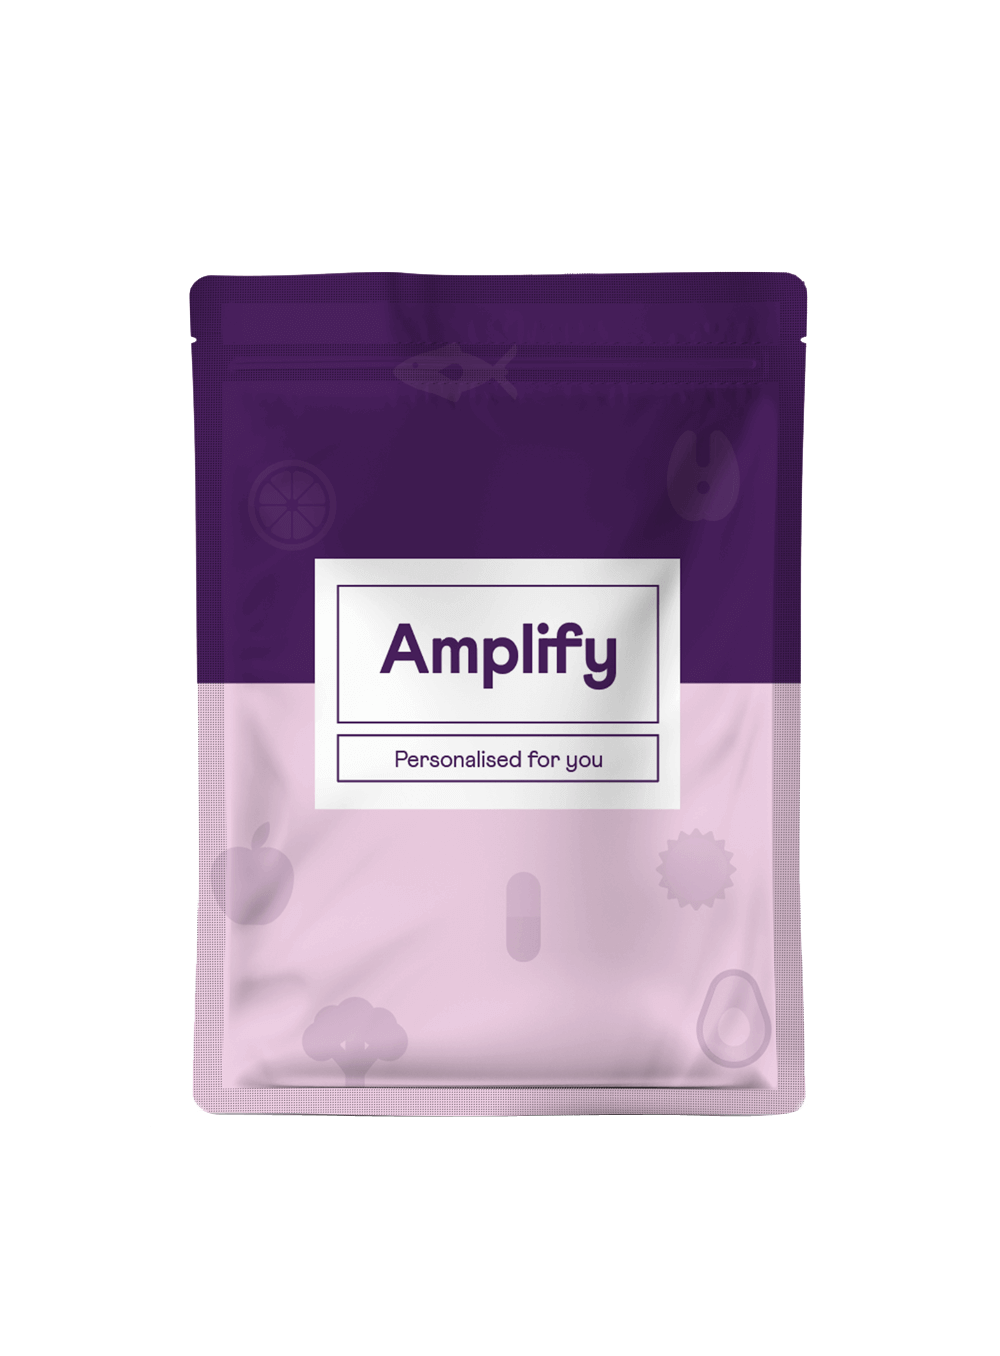 The benefits of Amplify for DNAfit users